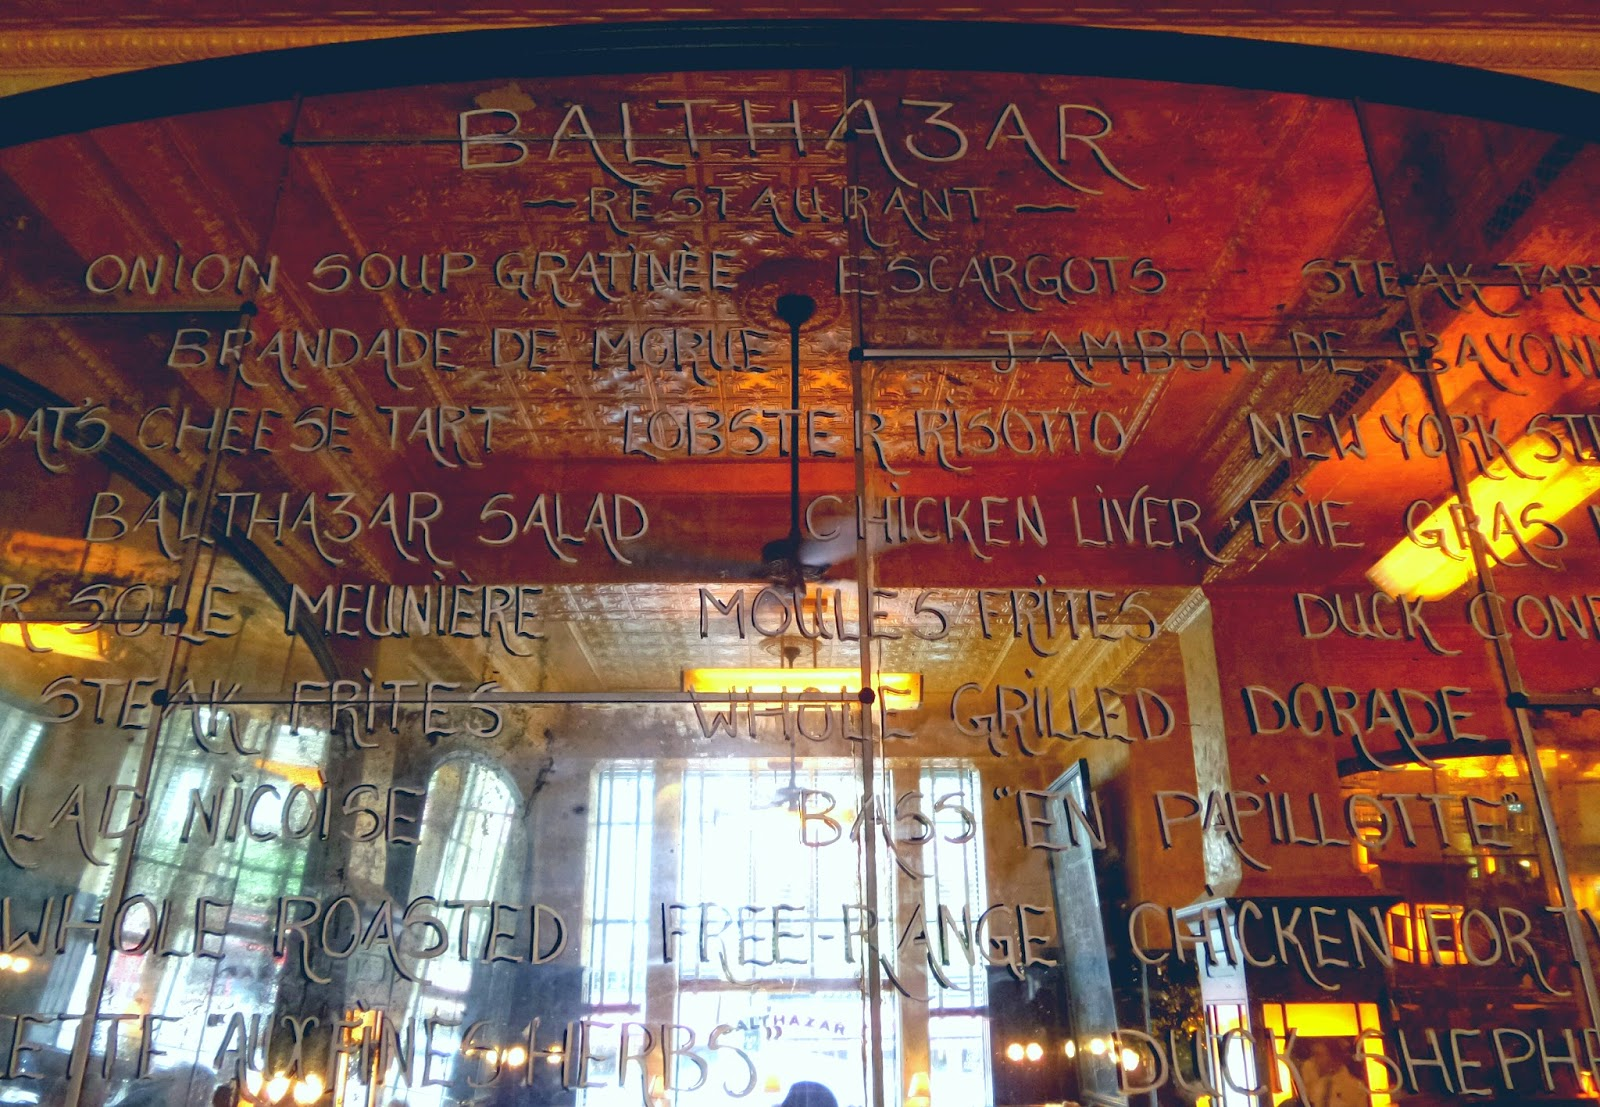 Balthazar London - Brunch